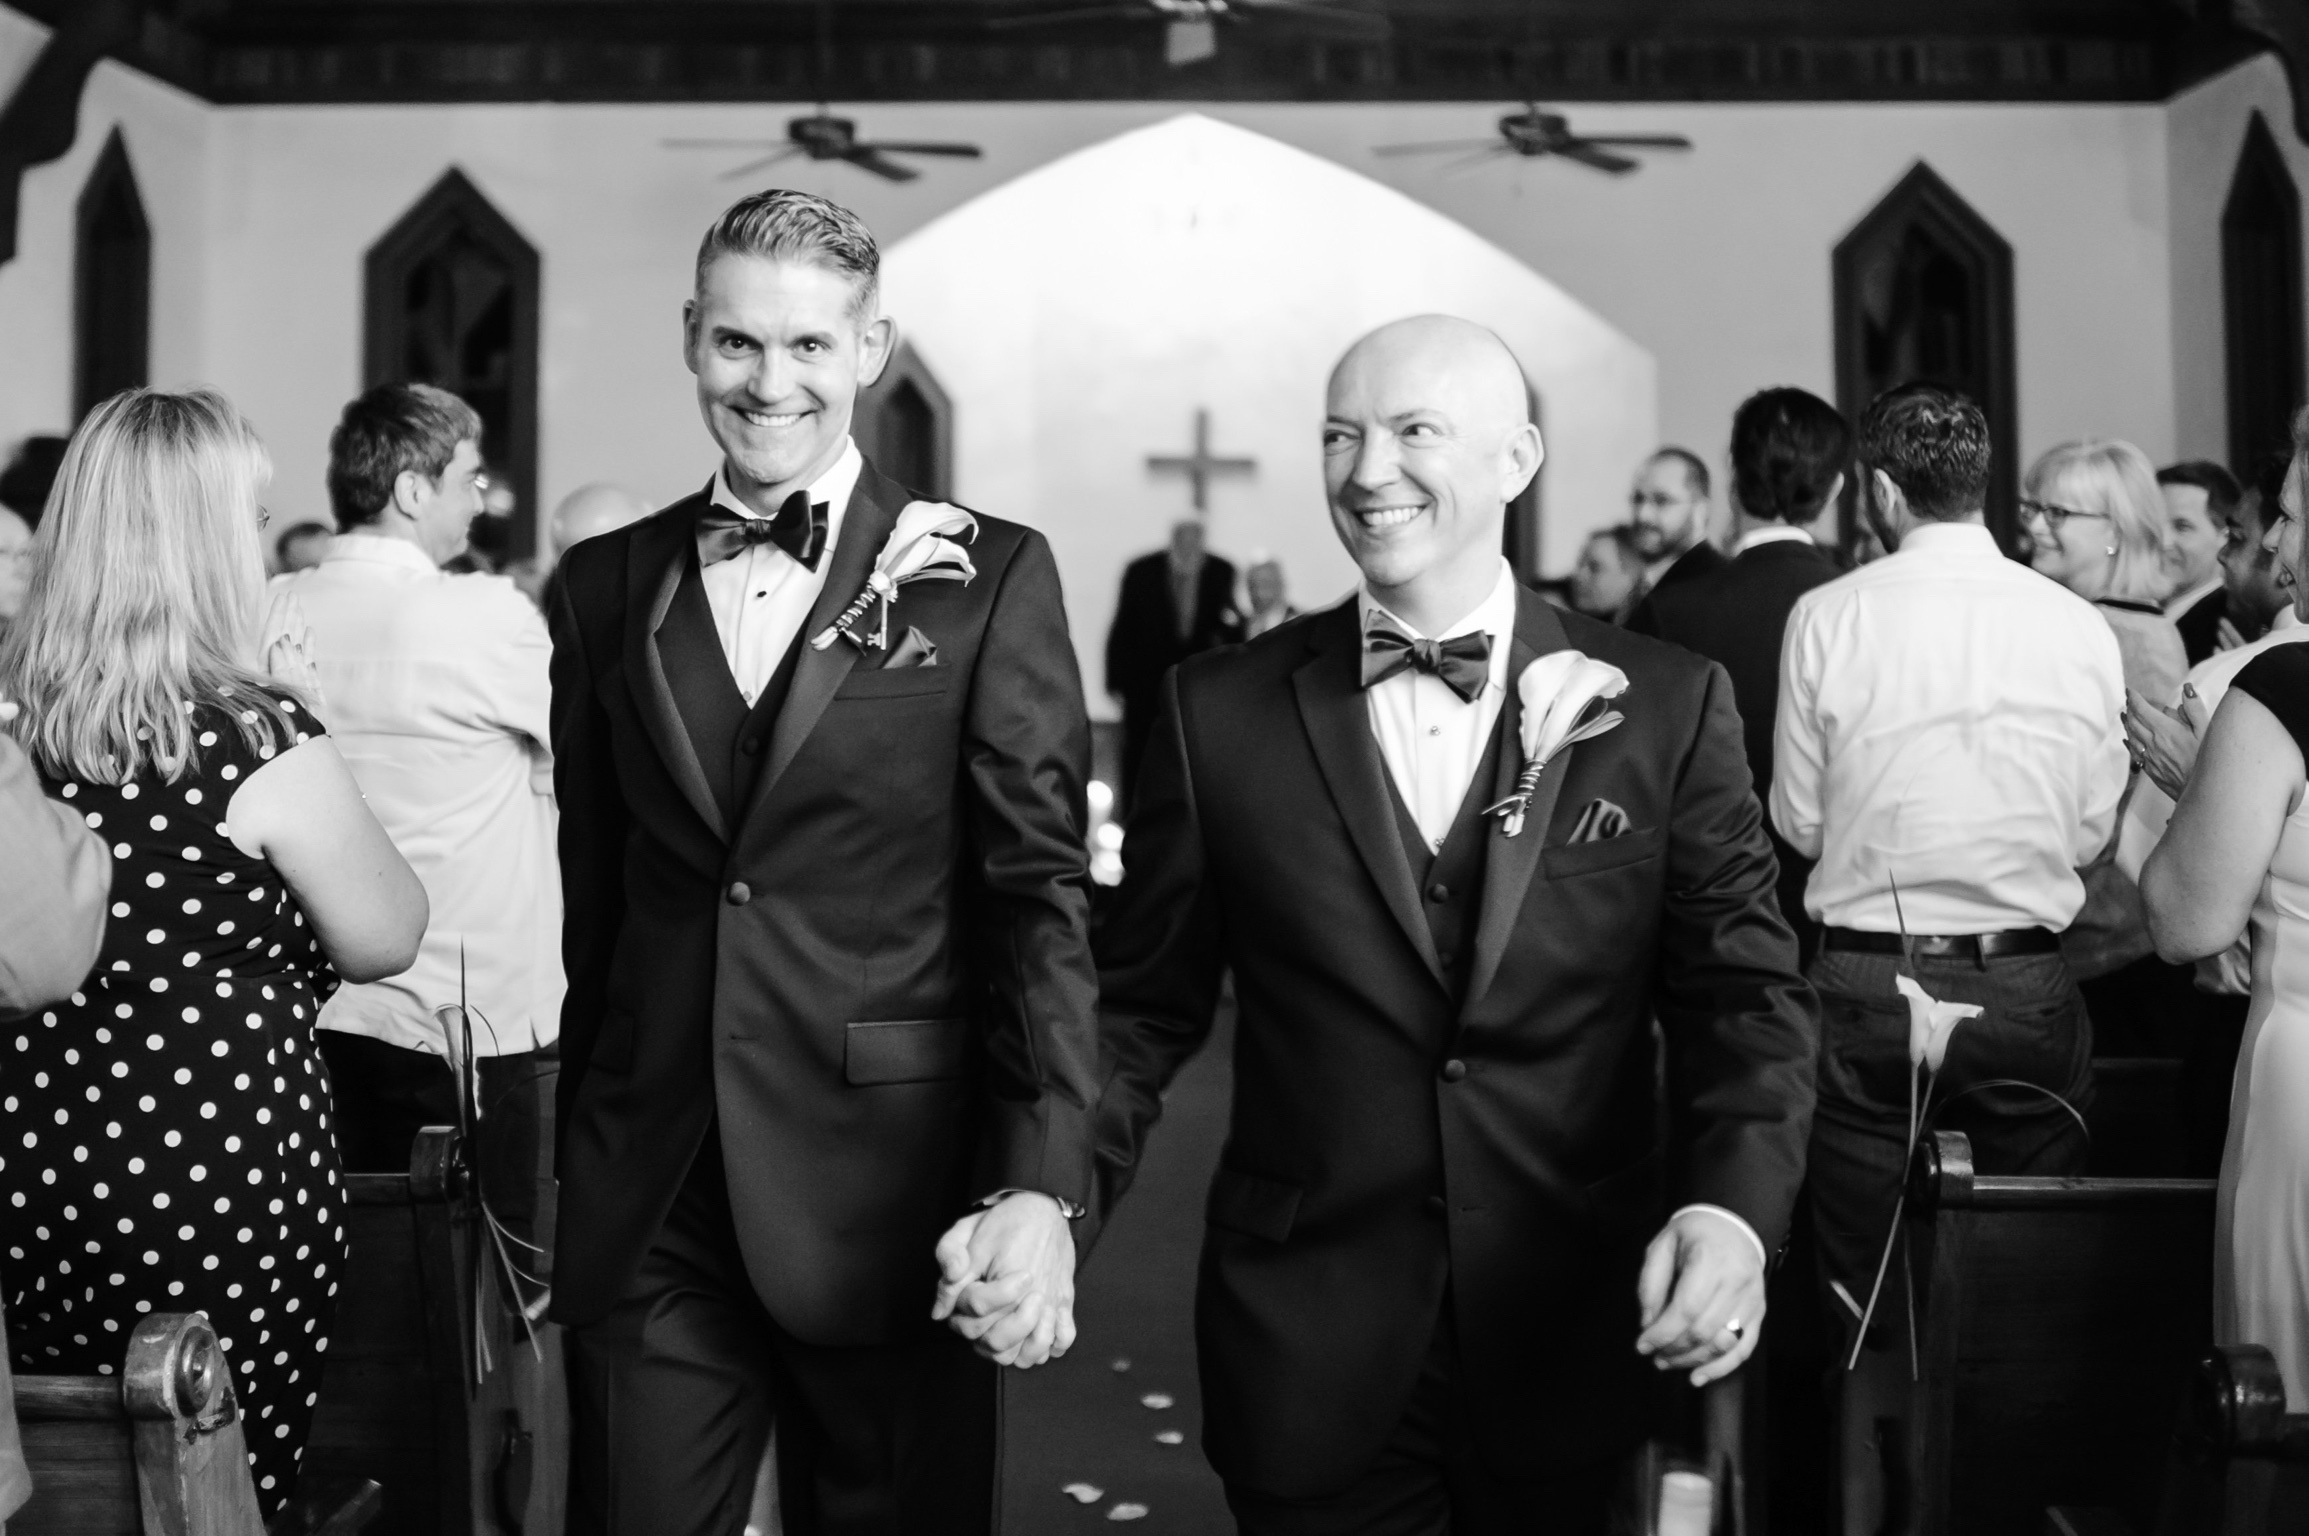 All smiles on their big day!